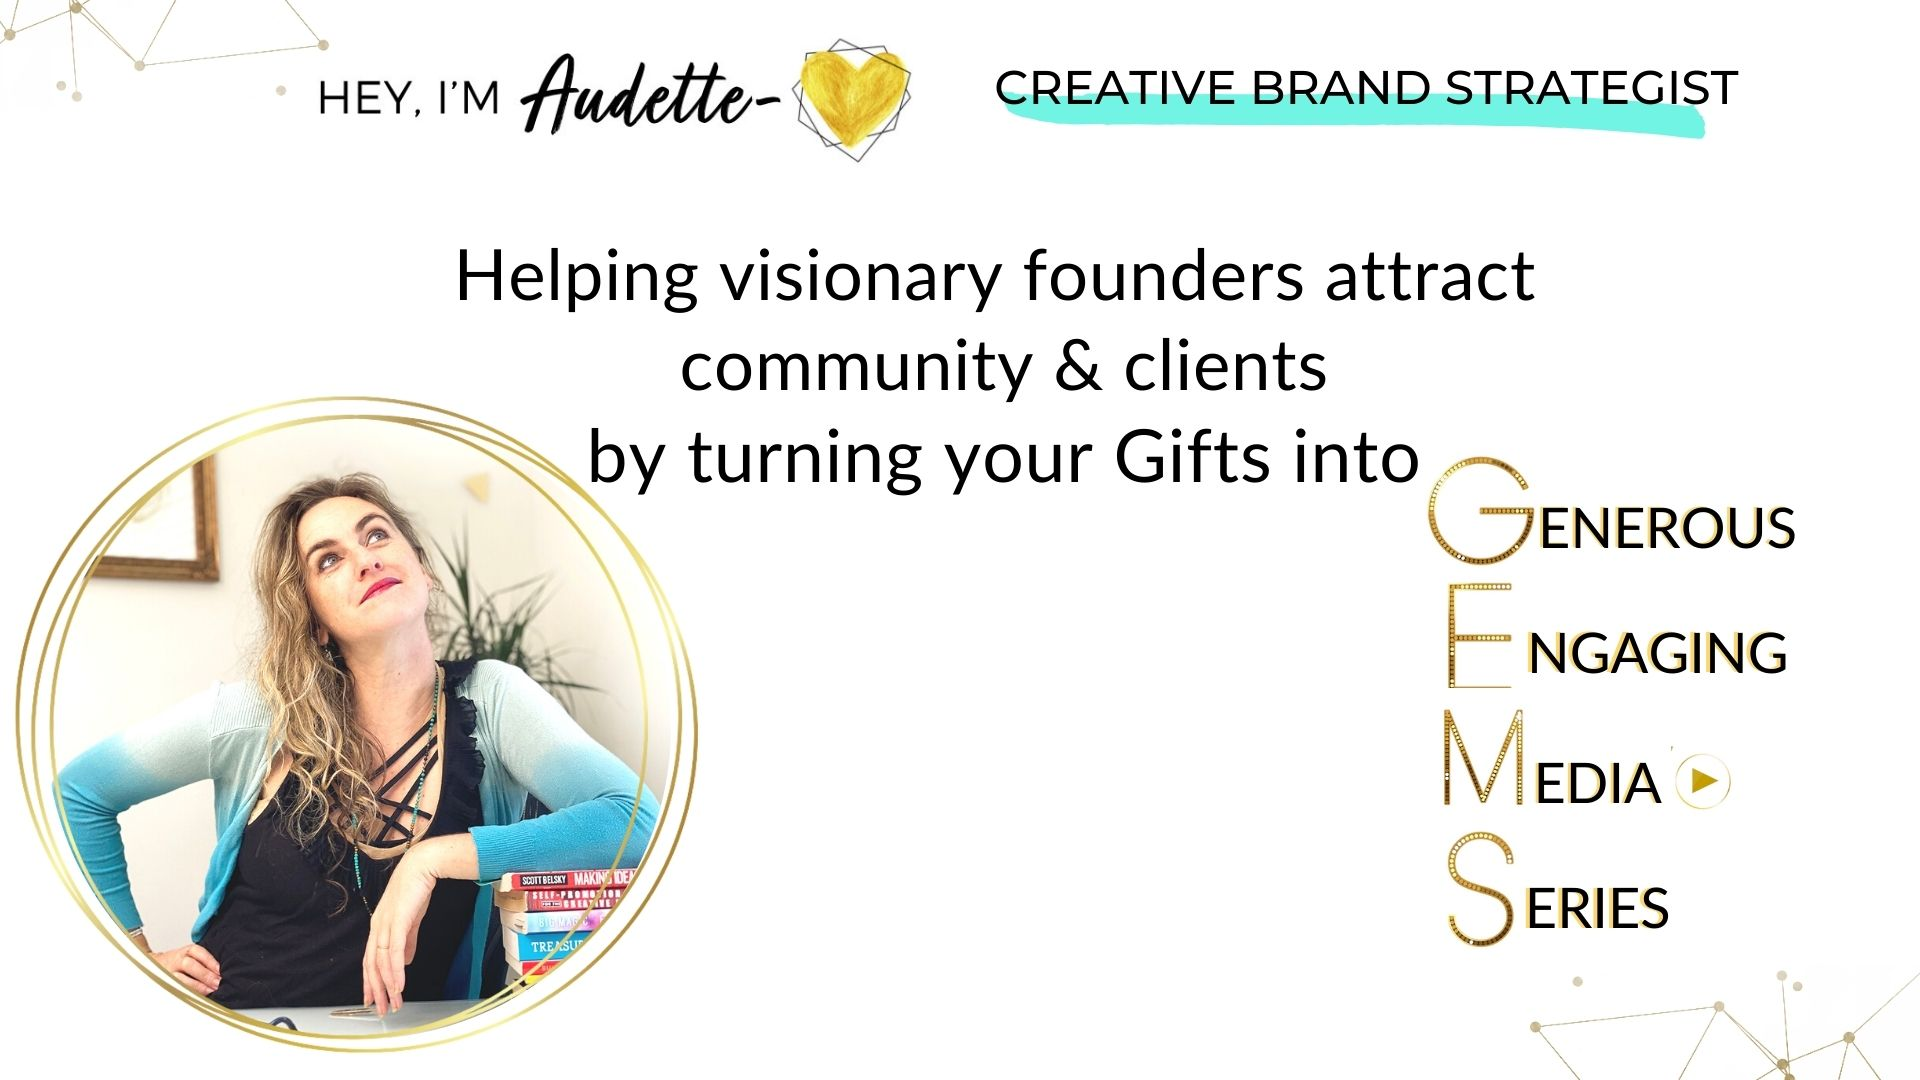 Catalyst Studios helps visionary founders & multi-faceted creative professionals with video marketing & virtual video production Audette brand strategist